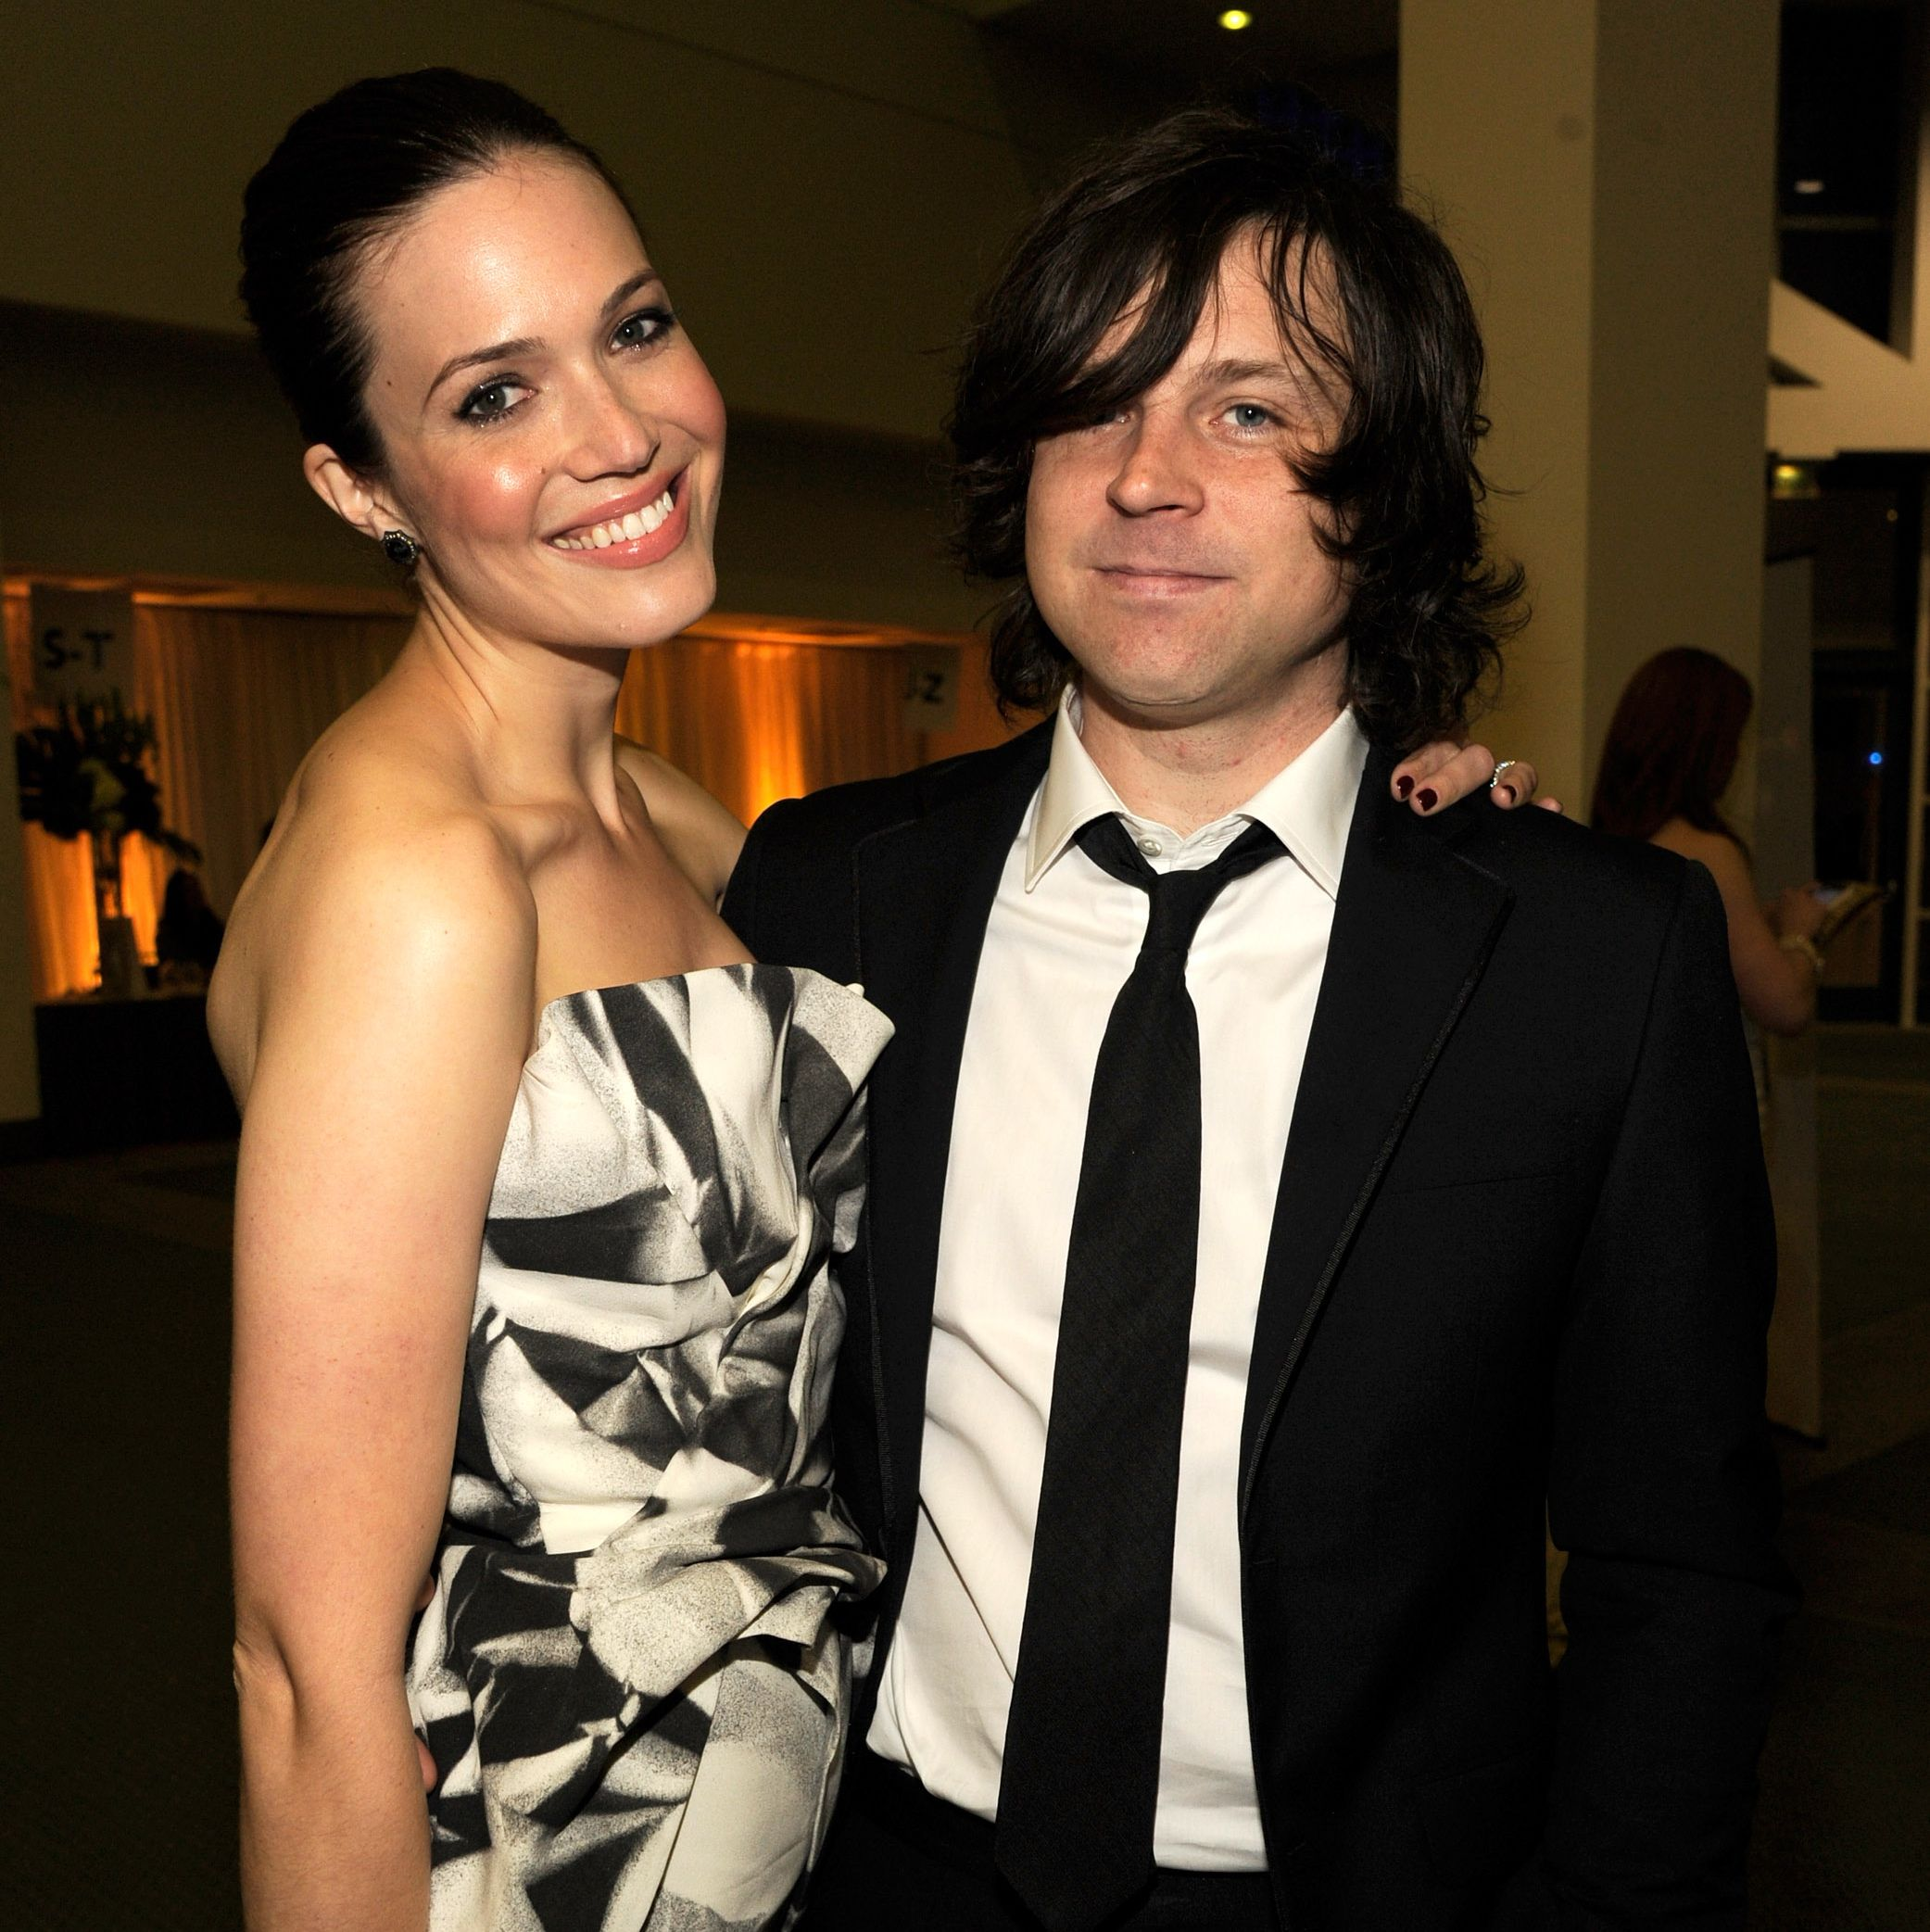 Ryan Adams responds to ex-wife Mandy Moore's accusations of emotional abuse